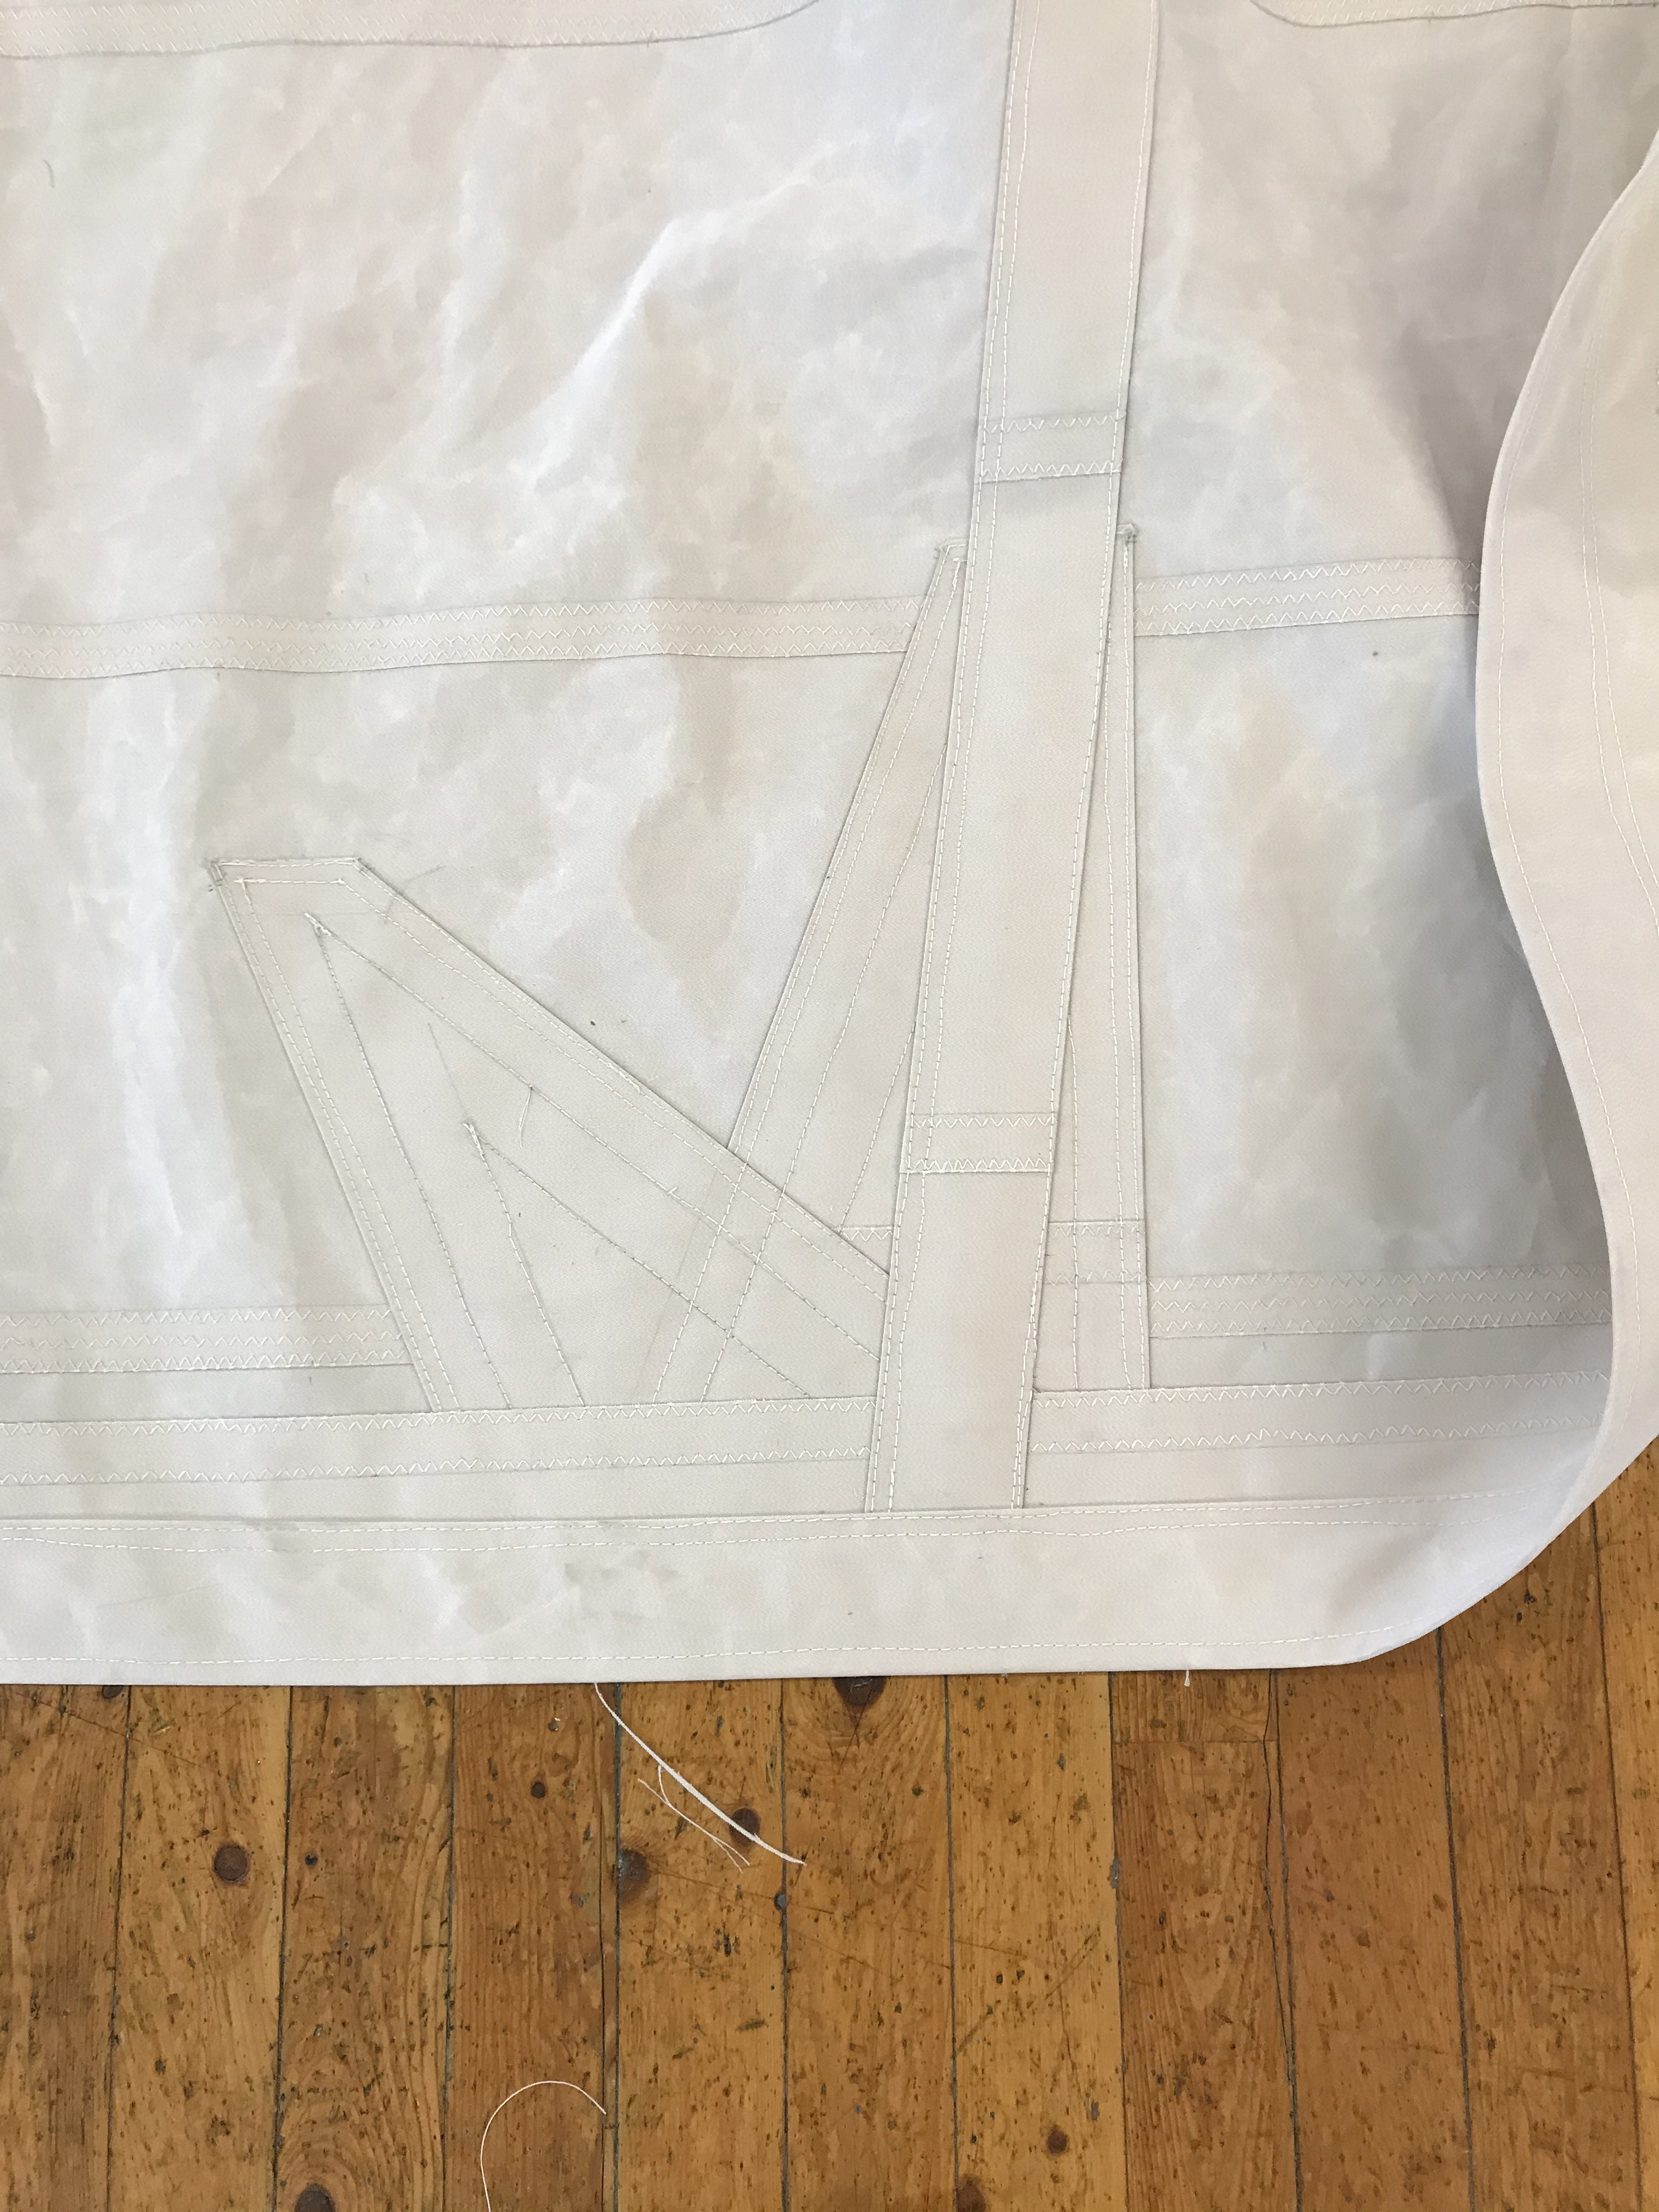 This image shows some of the fine work on Ernestina-Morrissey's new sails.